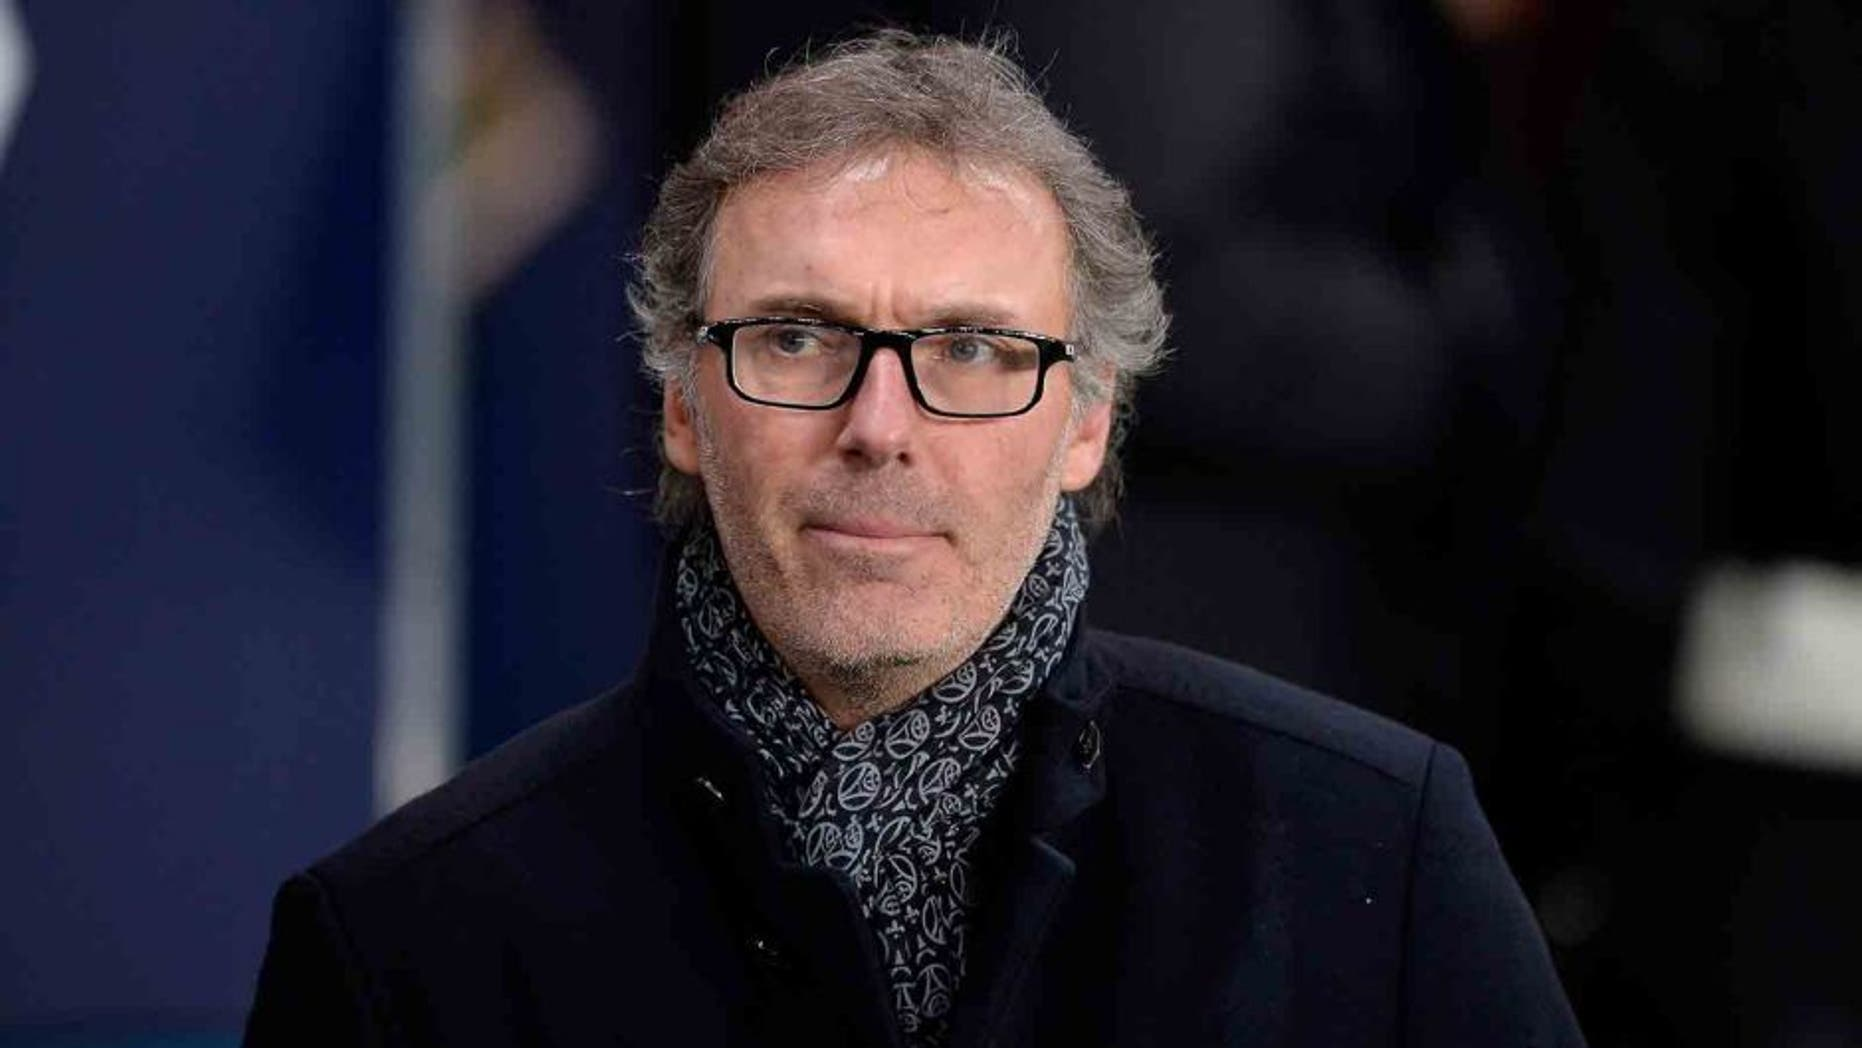 PARIS, FRANCE - JANUARY 19: Paris Saint-Germain Head Coach Laurent Blanc reacts as the teams enters the field for the French Cup game between Paris Saint-Germain and Toulouse FC at Parc des Princes on January 19, 2016 in Paris, France. (Photo by Aurelien Meunier/Getty Images)